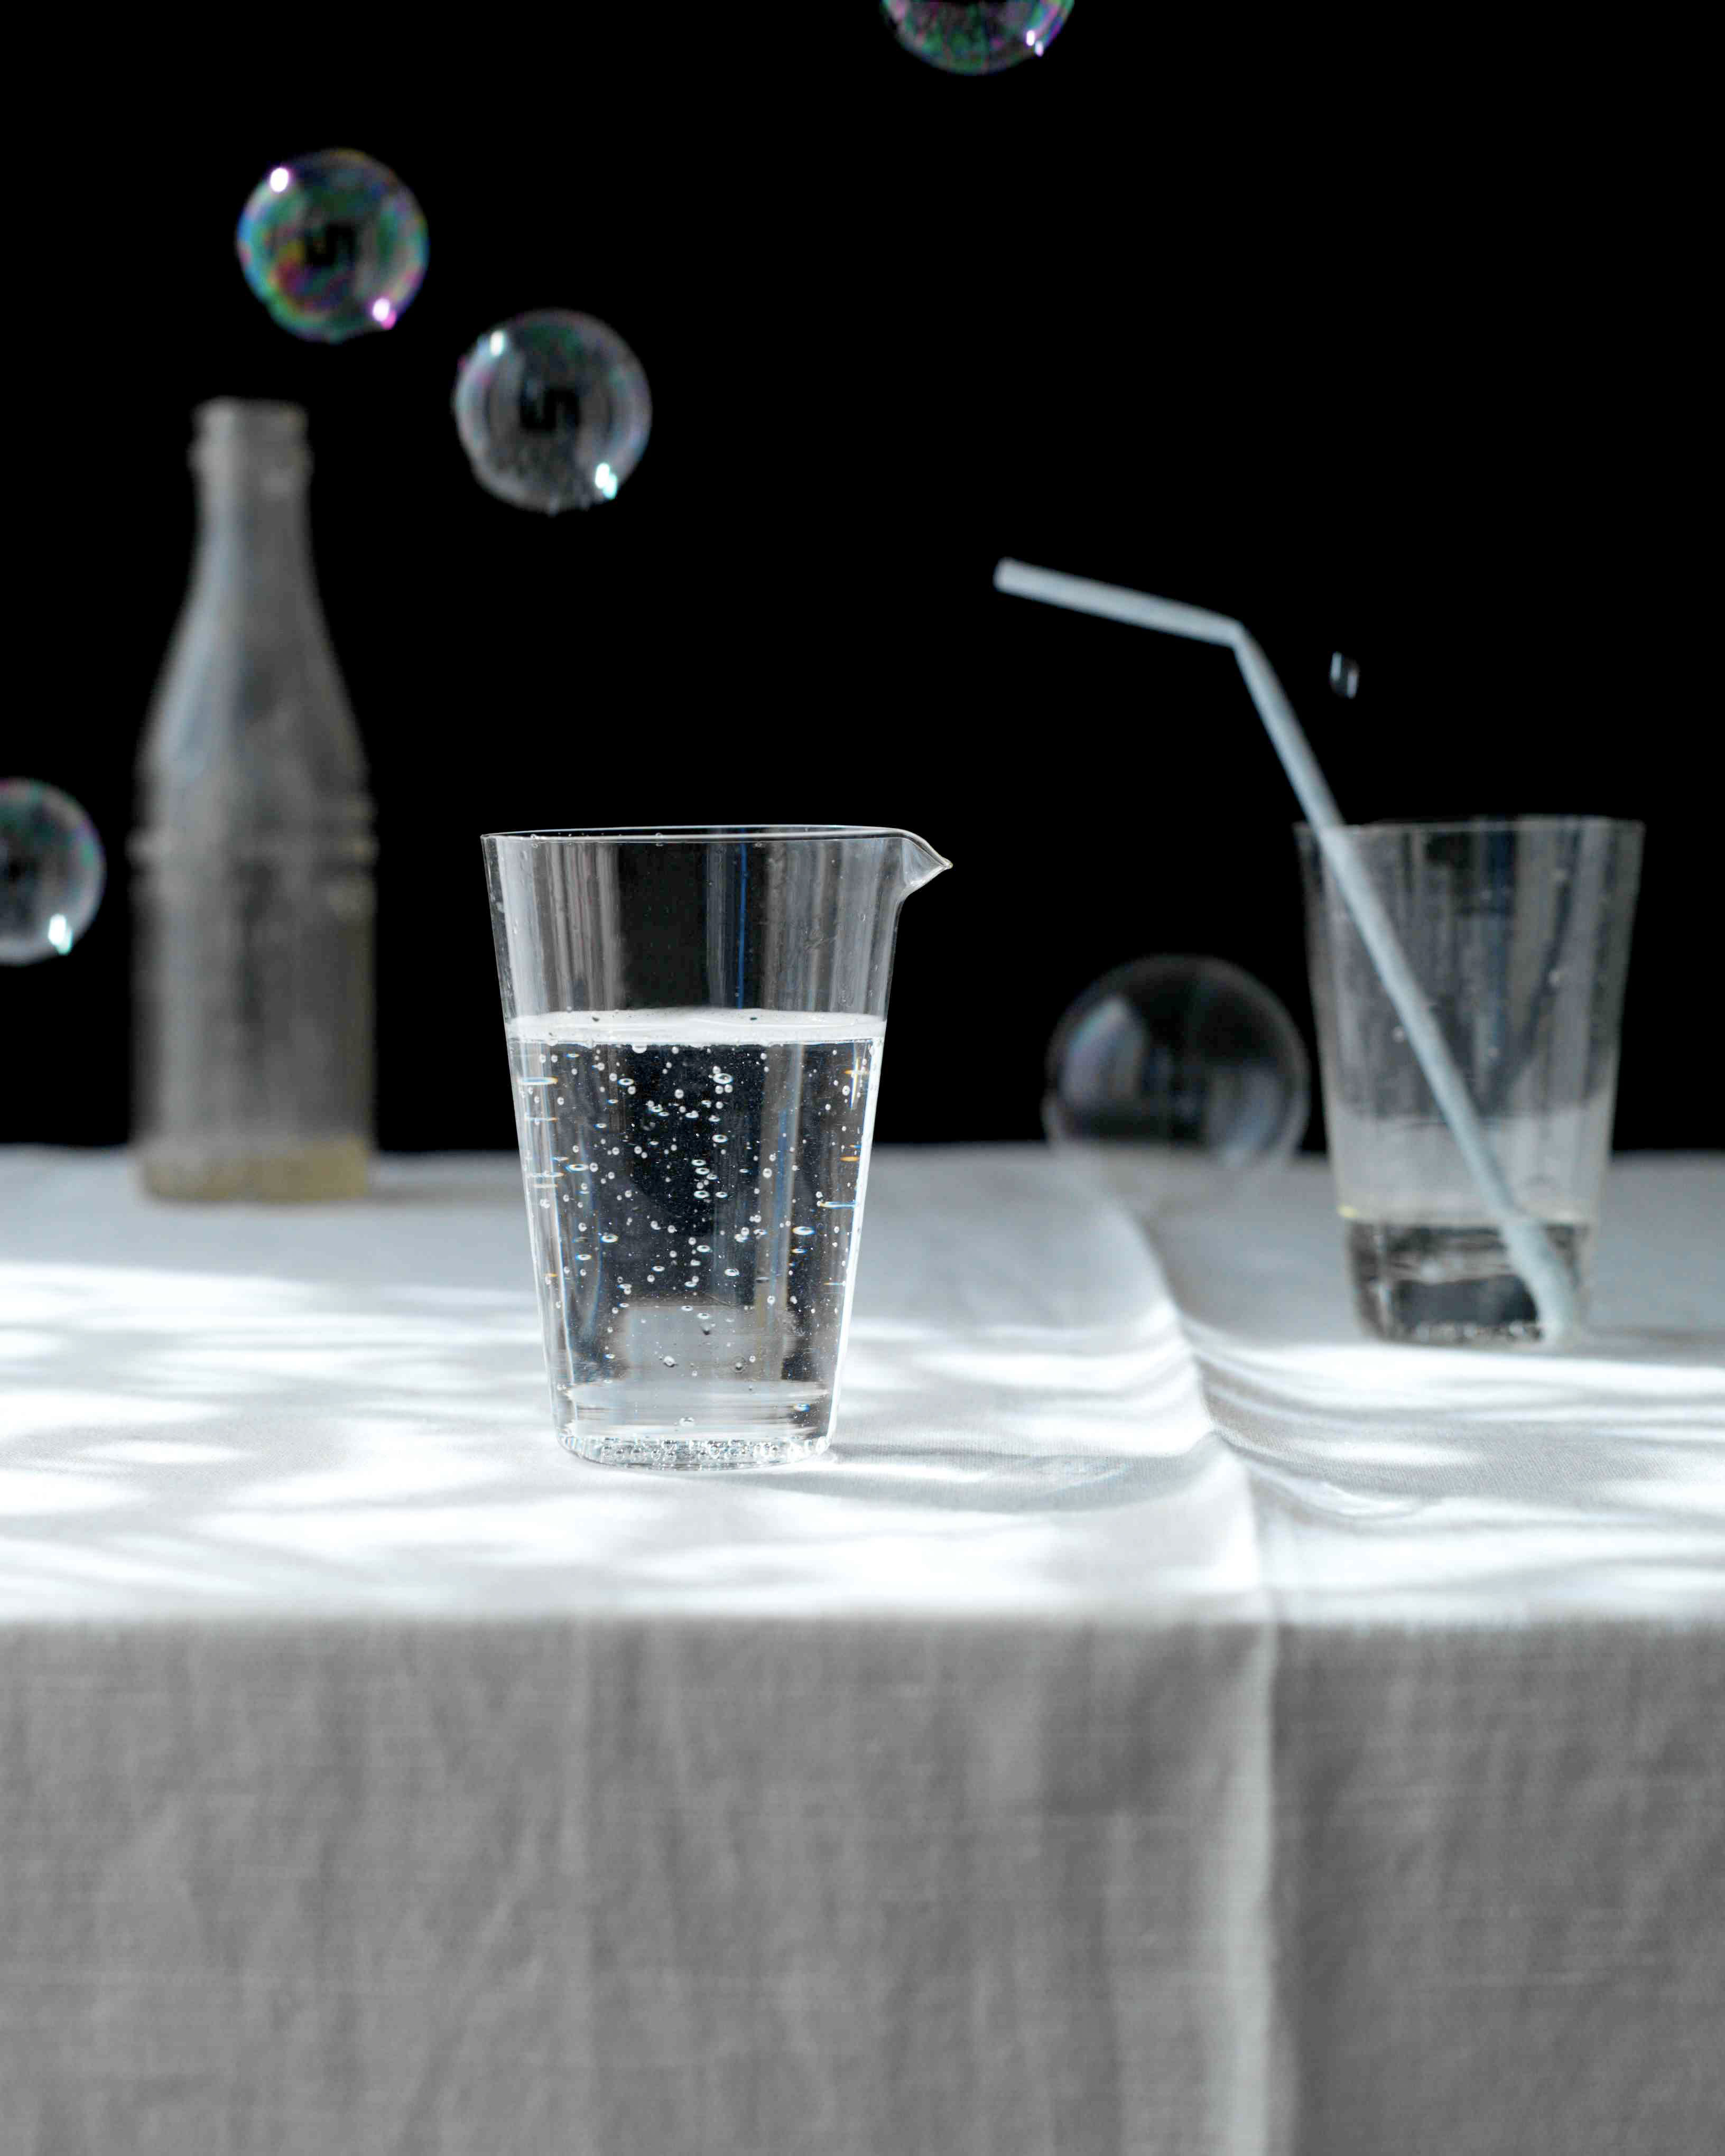 Robyn Valarik San Francisco Based Food & Drink Stylist - water, glasses, drinking, bubbles, black, still-life,  liquid, food-photography